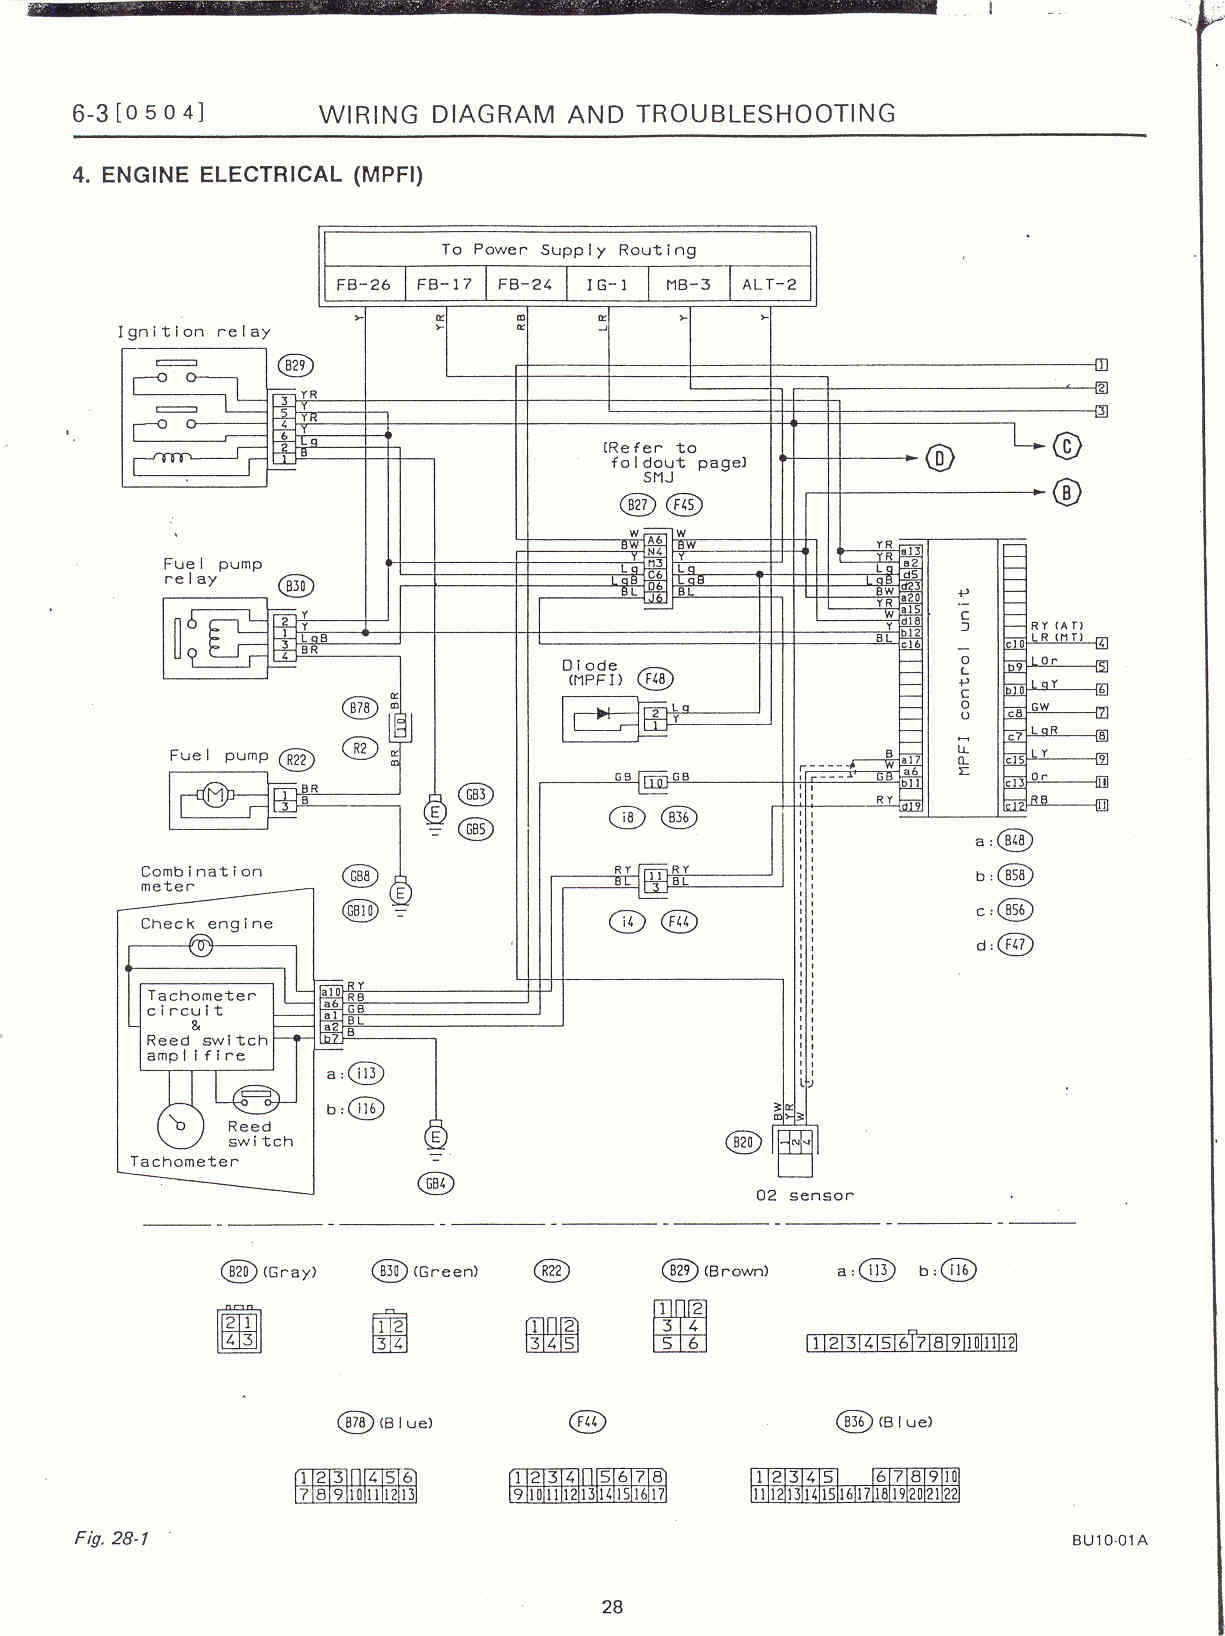 hight resolution of 2005 wrx engine diagram smart wiring diagrams u2022 2005 chevy monte carlo engine diagram 2005